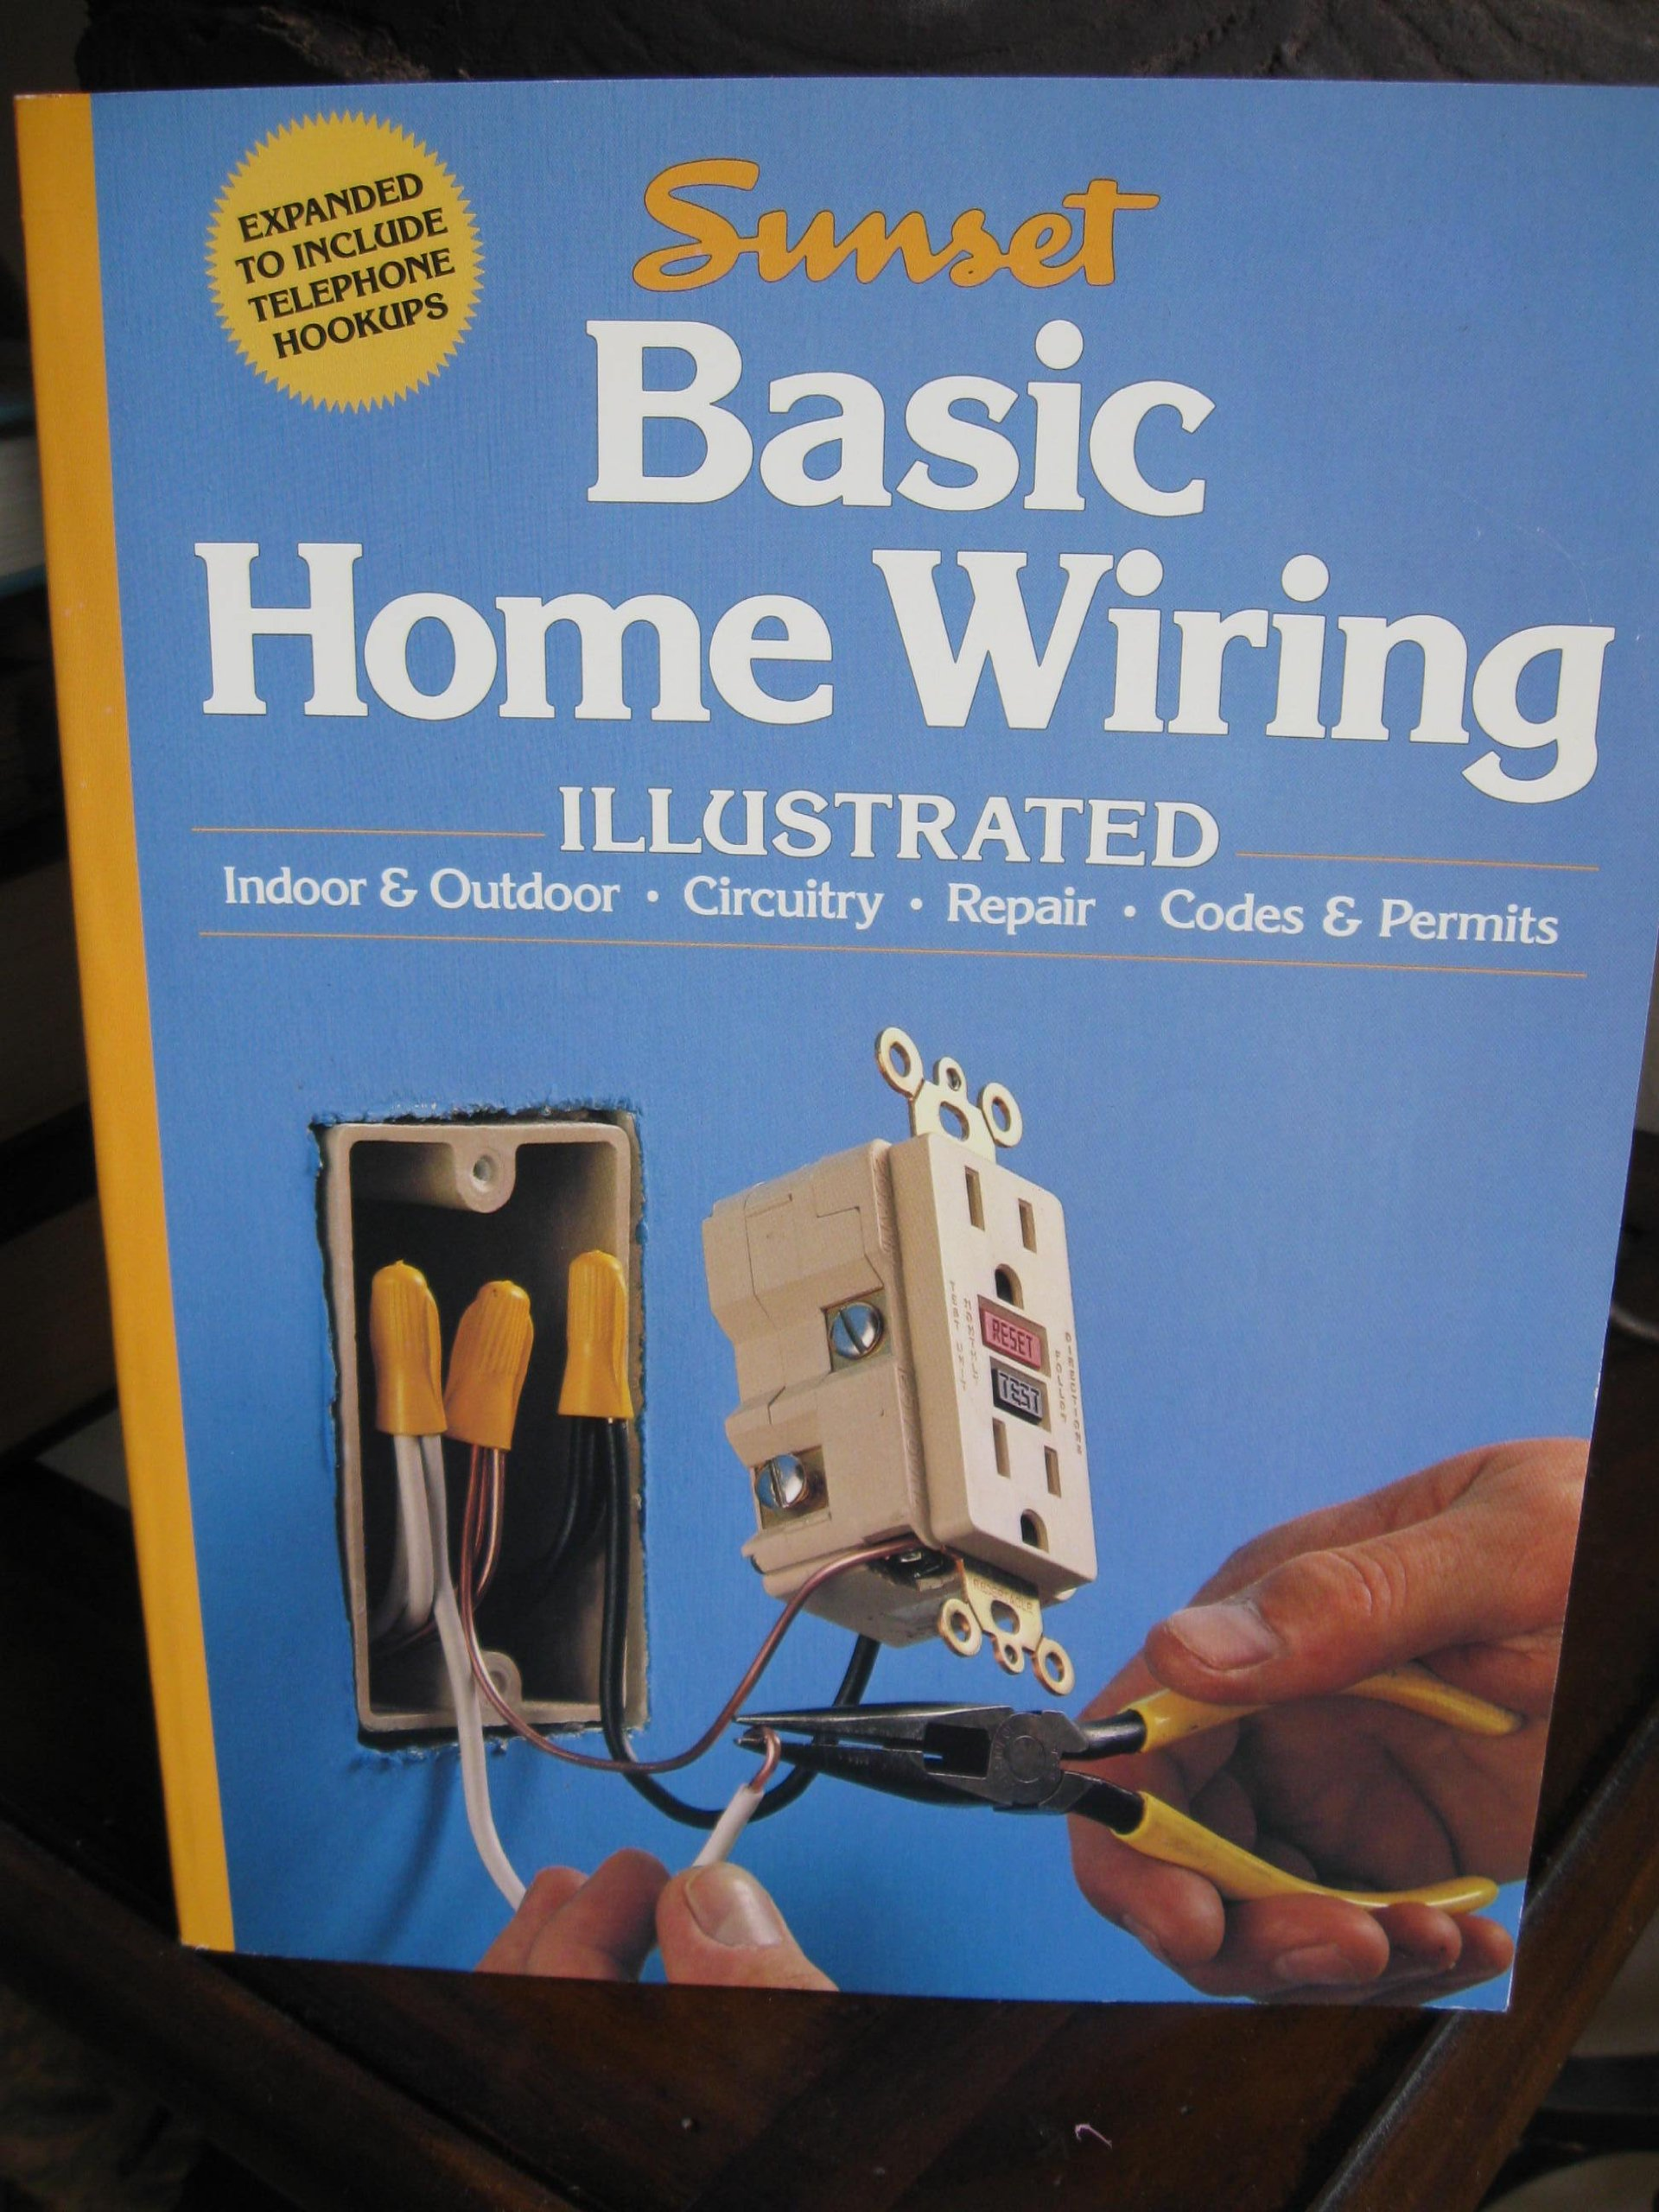 Basic Home Wiring Illustrated Sunset Magazine Book Editors Books